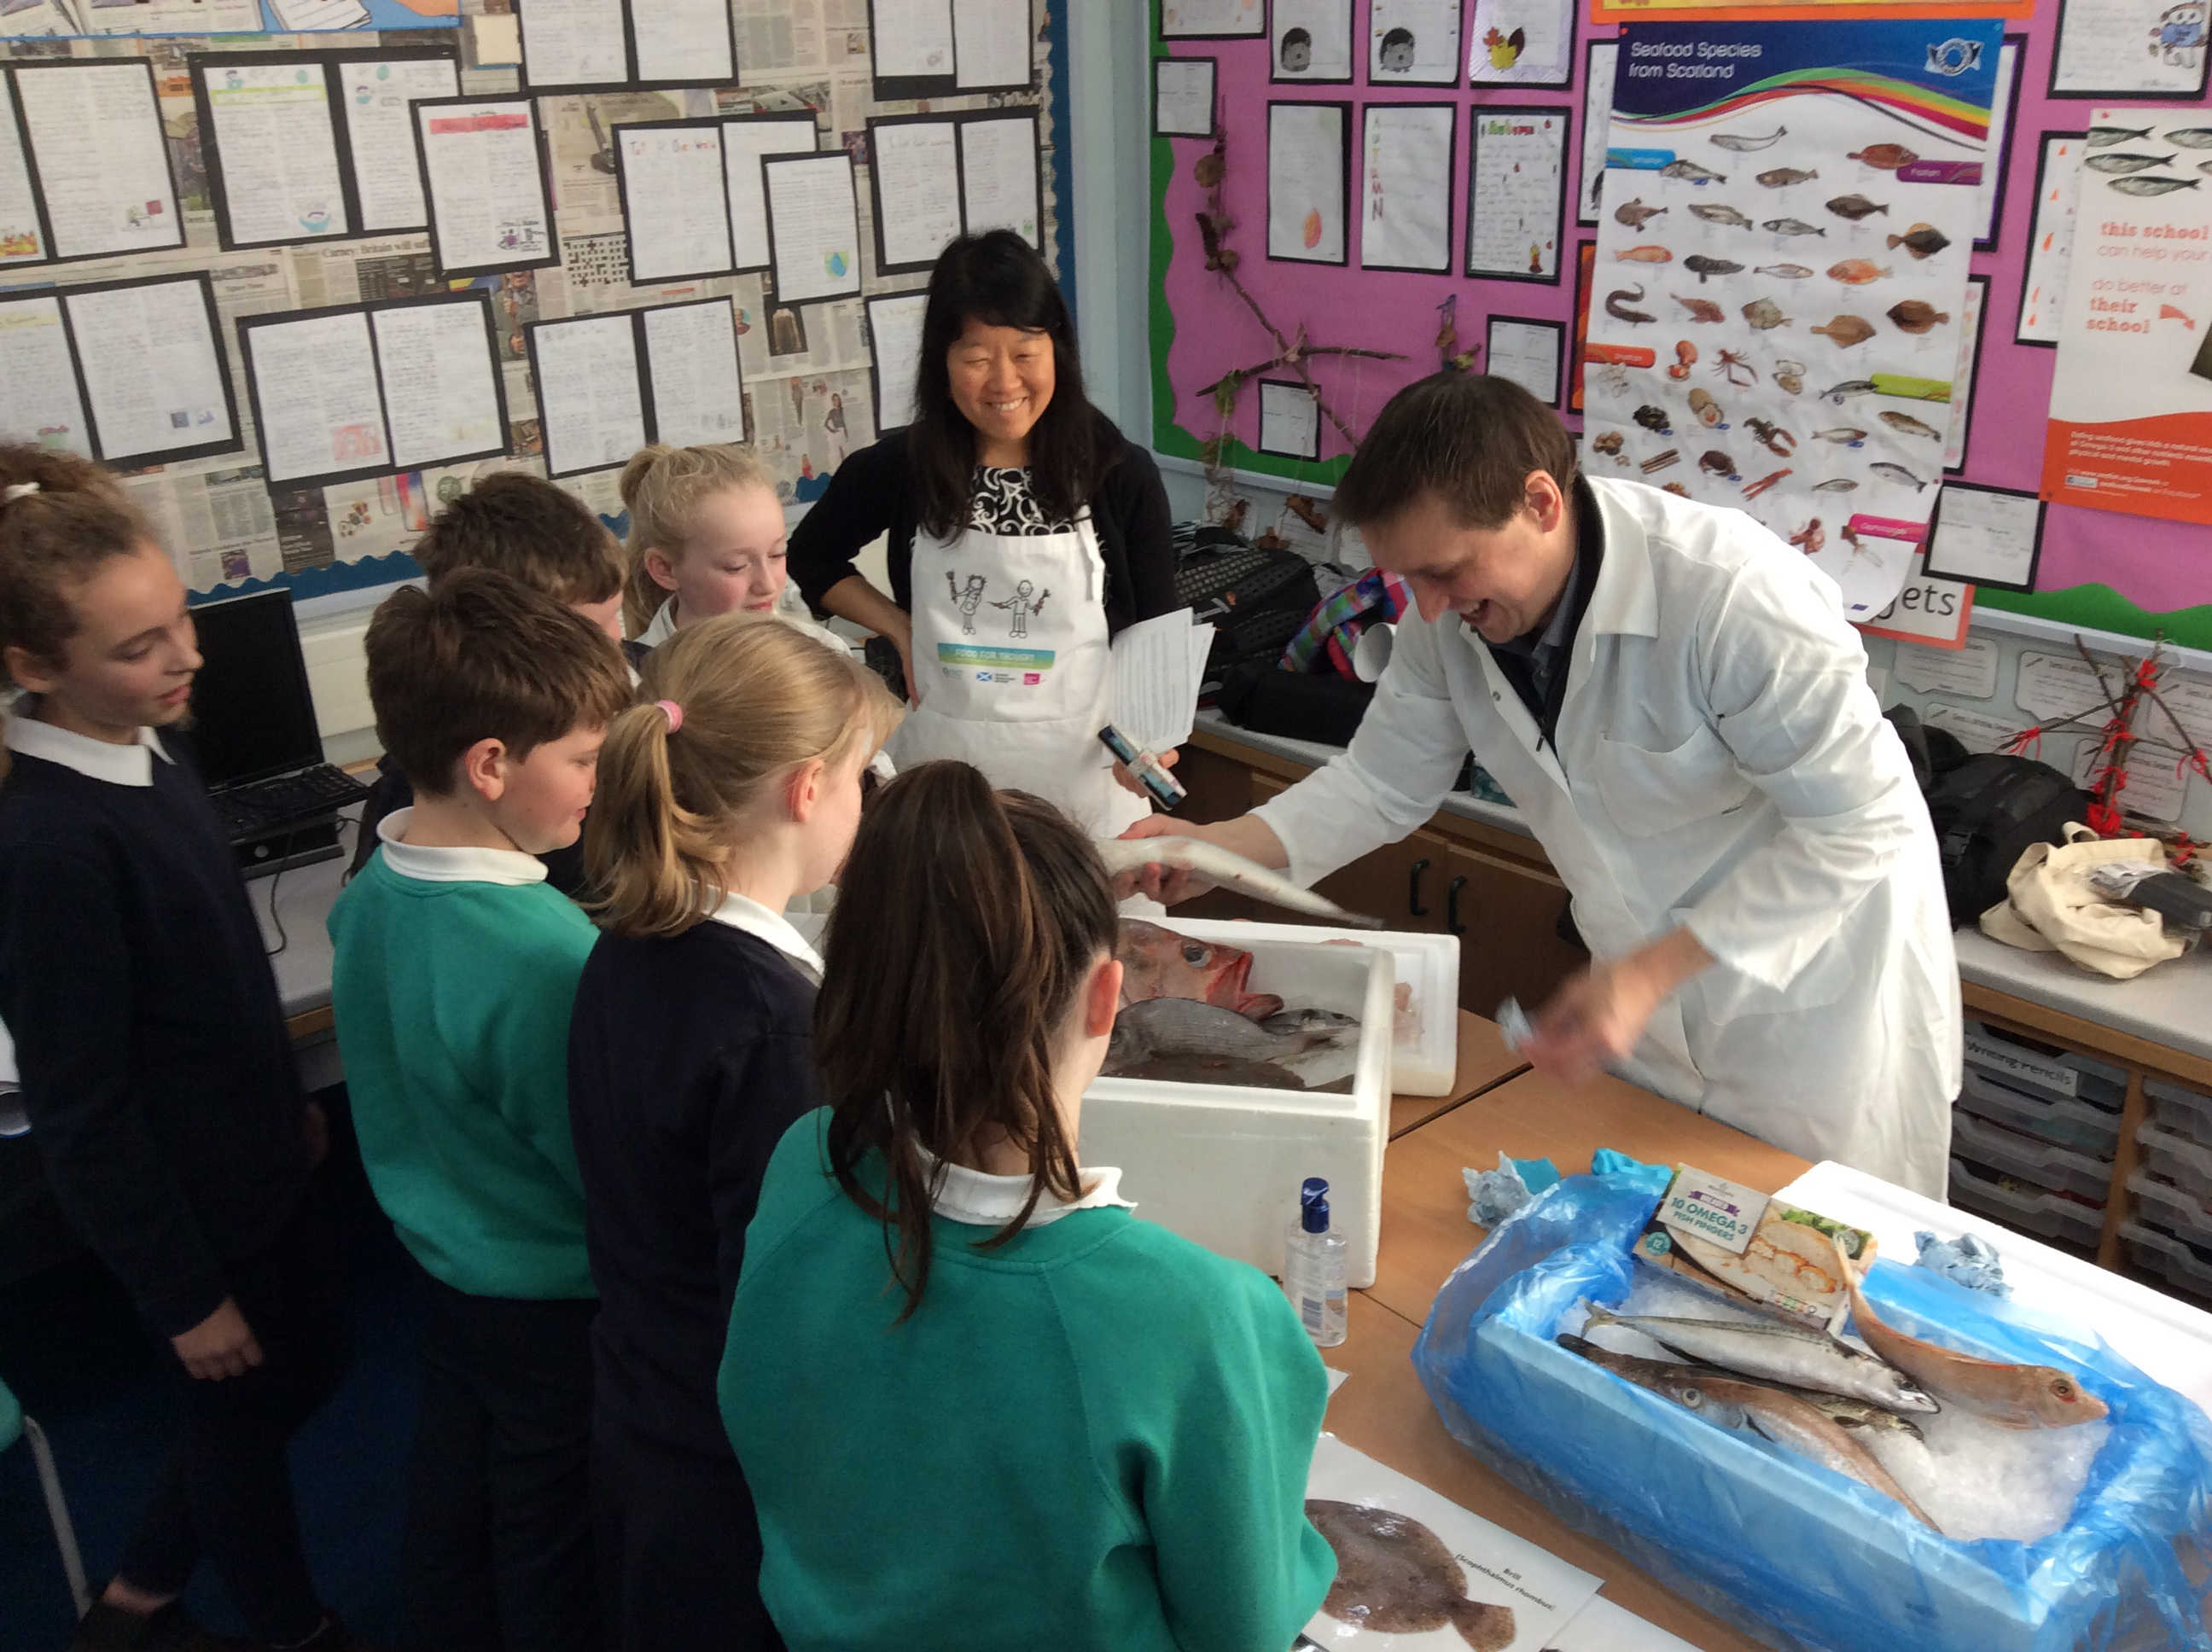 Primary school pupils from Balfron Primary School in Stirlingshire receive a hands-on lesson from Institute of Aquaculture staff